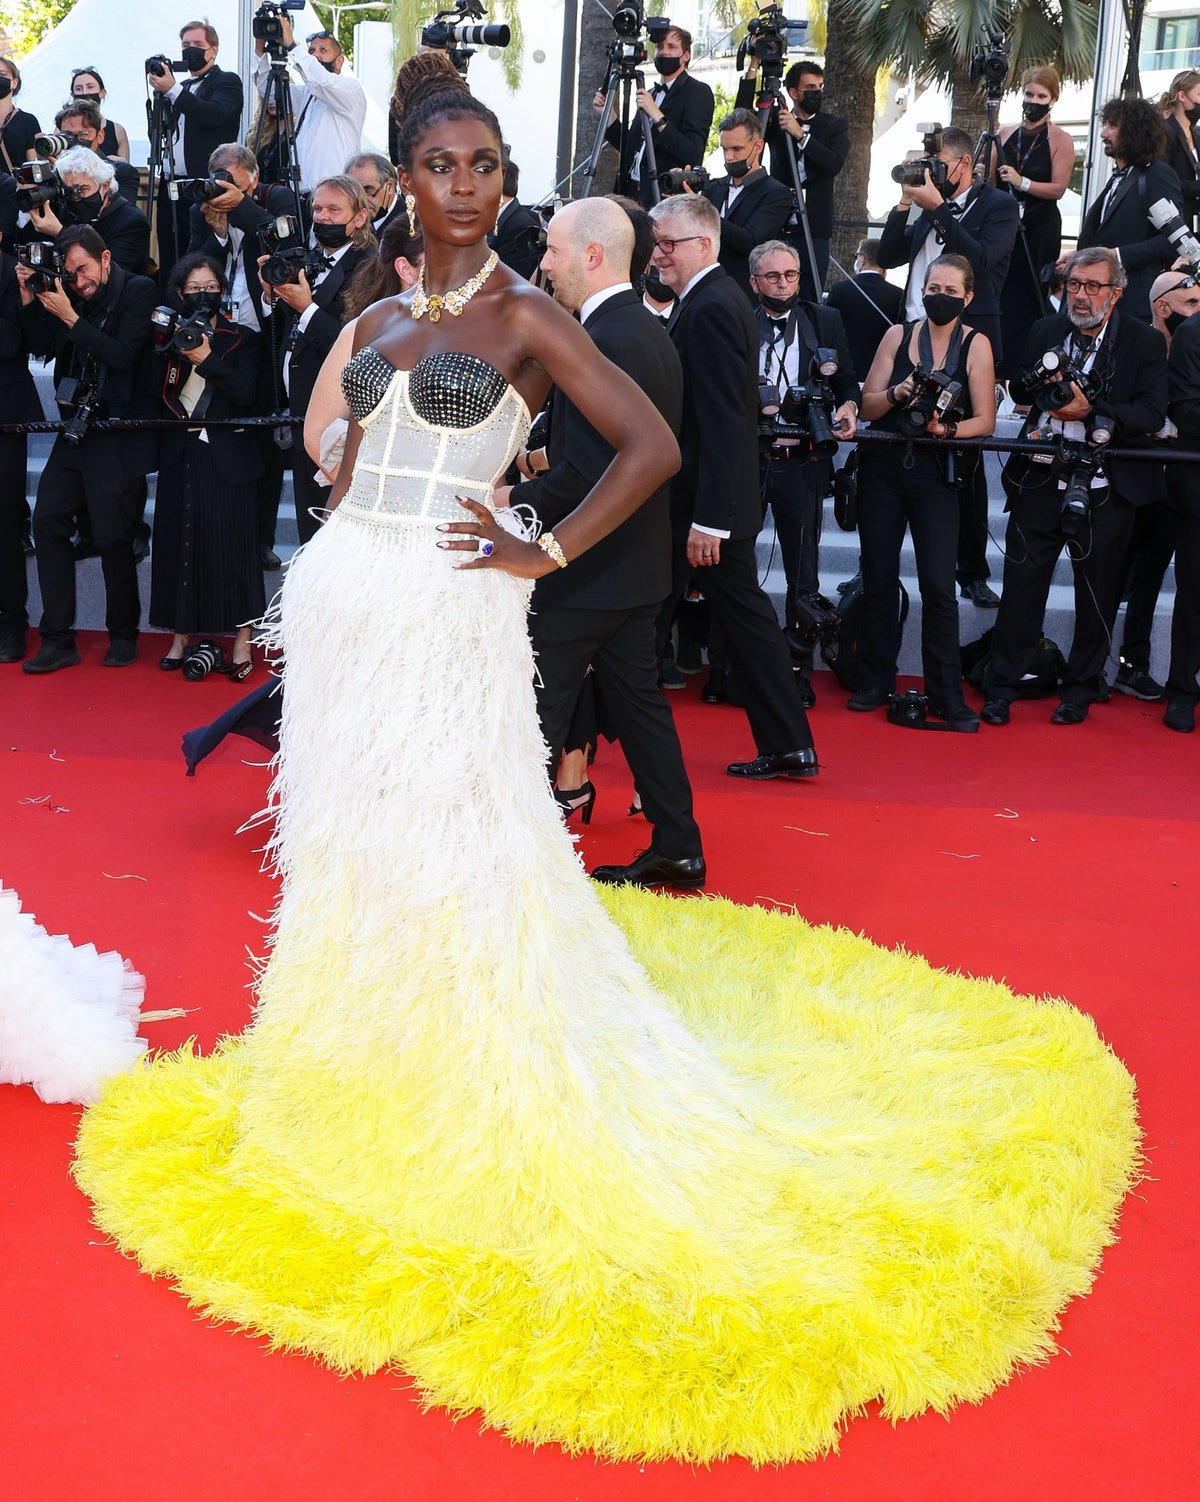 """CANNES, FRANCE - JULY 08: Jodie Turner-Smith attends the """"Stillwater"""" screening during the 74th annual Cannes Film Festival on July 08, 2021 in Cannes, France. (Photo by Mike Marsland/WireImage)"""